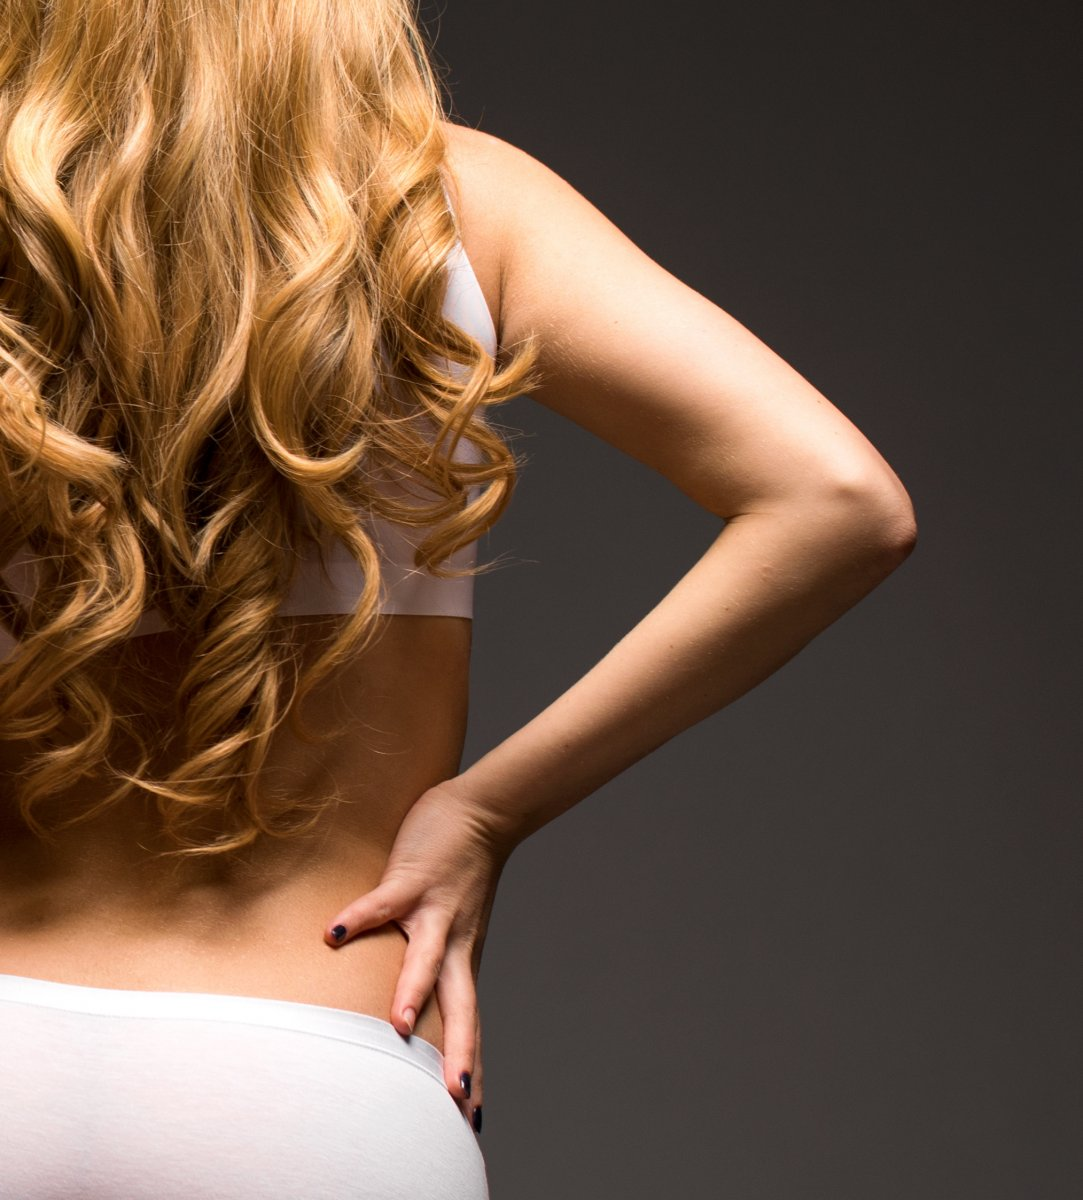 Blonde woman wearing white sporty lingerie, back view, isolated on gray background